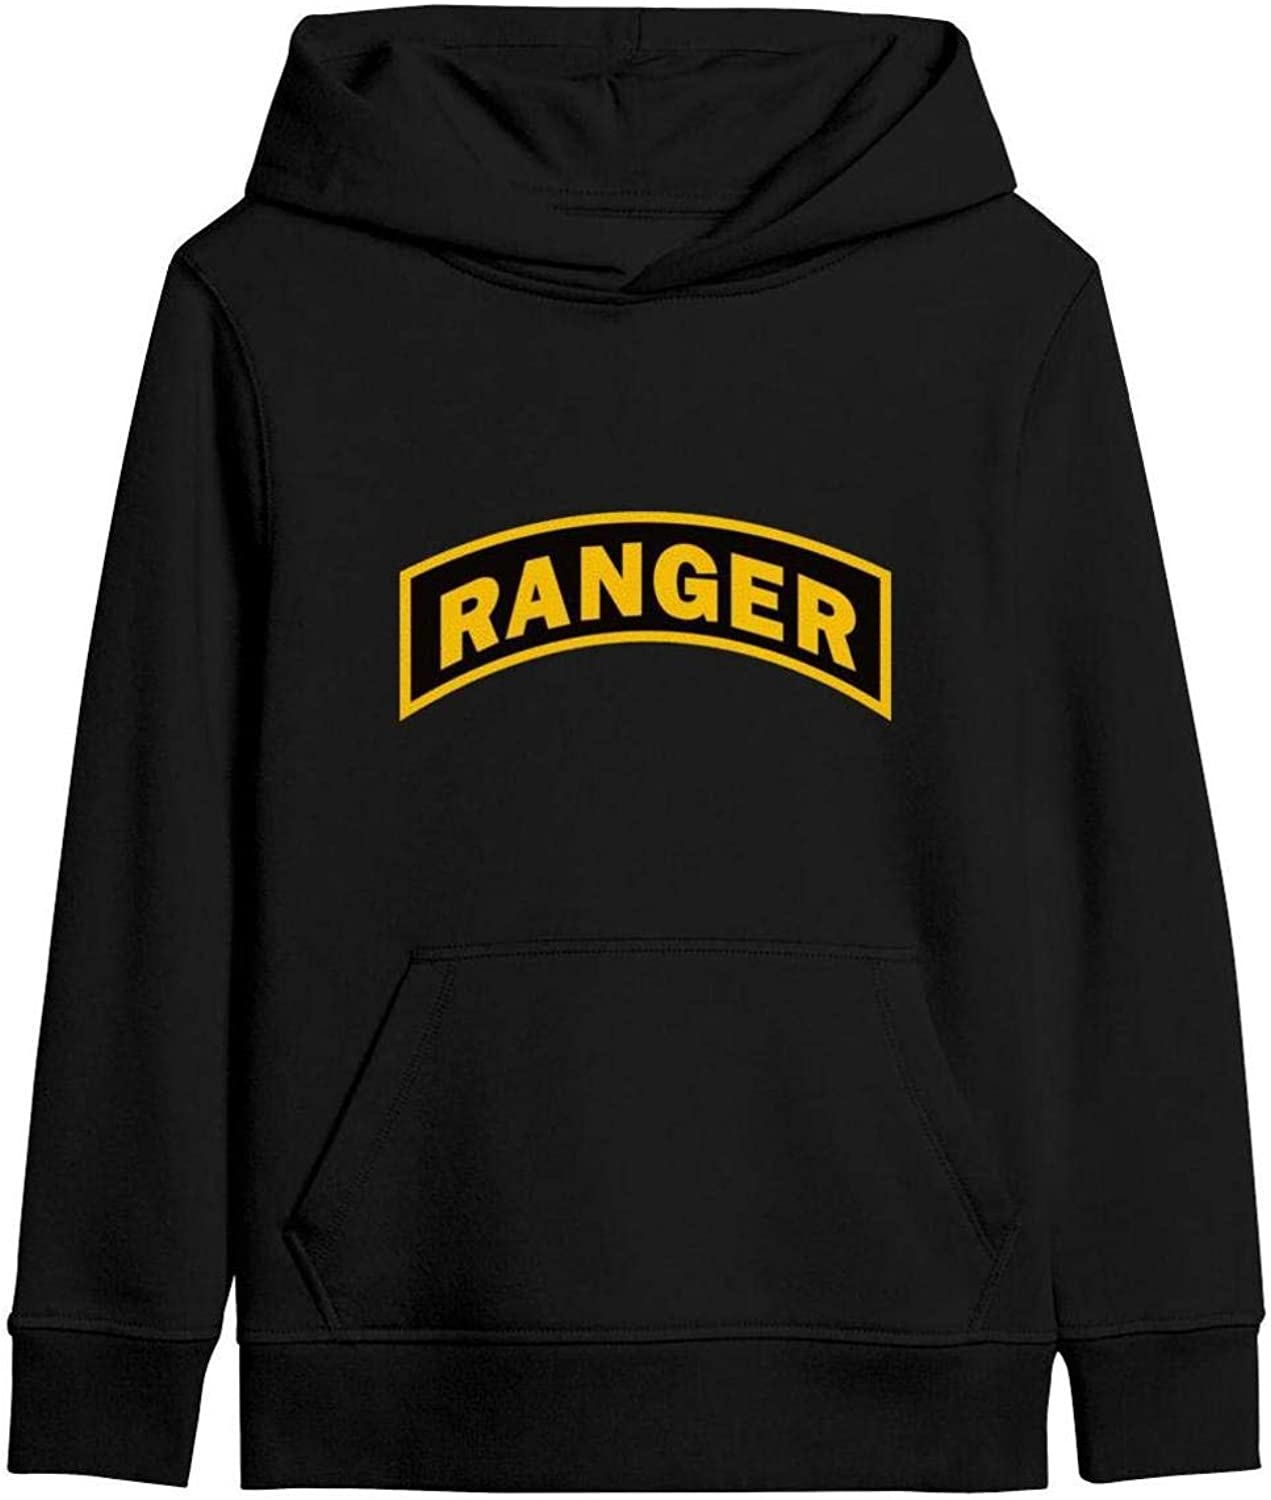 Kids United States Army Rangers Classic Pullover Hoodie Soft Hooded Sweatshirts Long Sleeve T-Shirt for Boys Girls